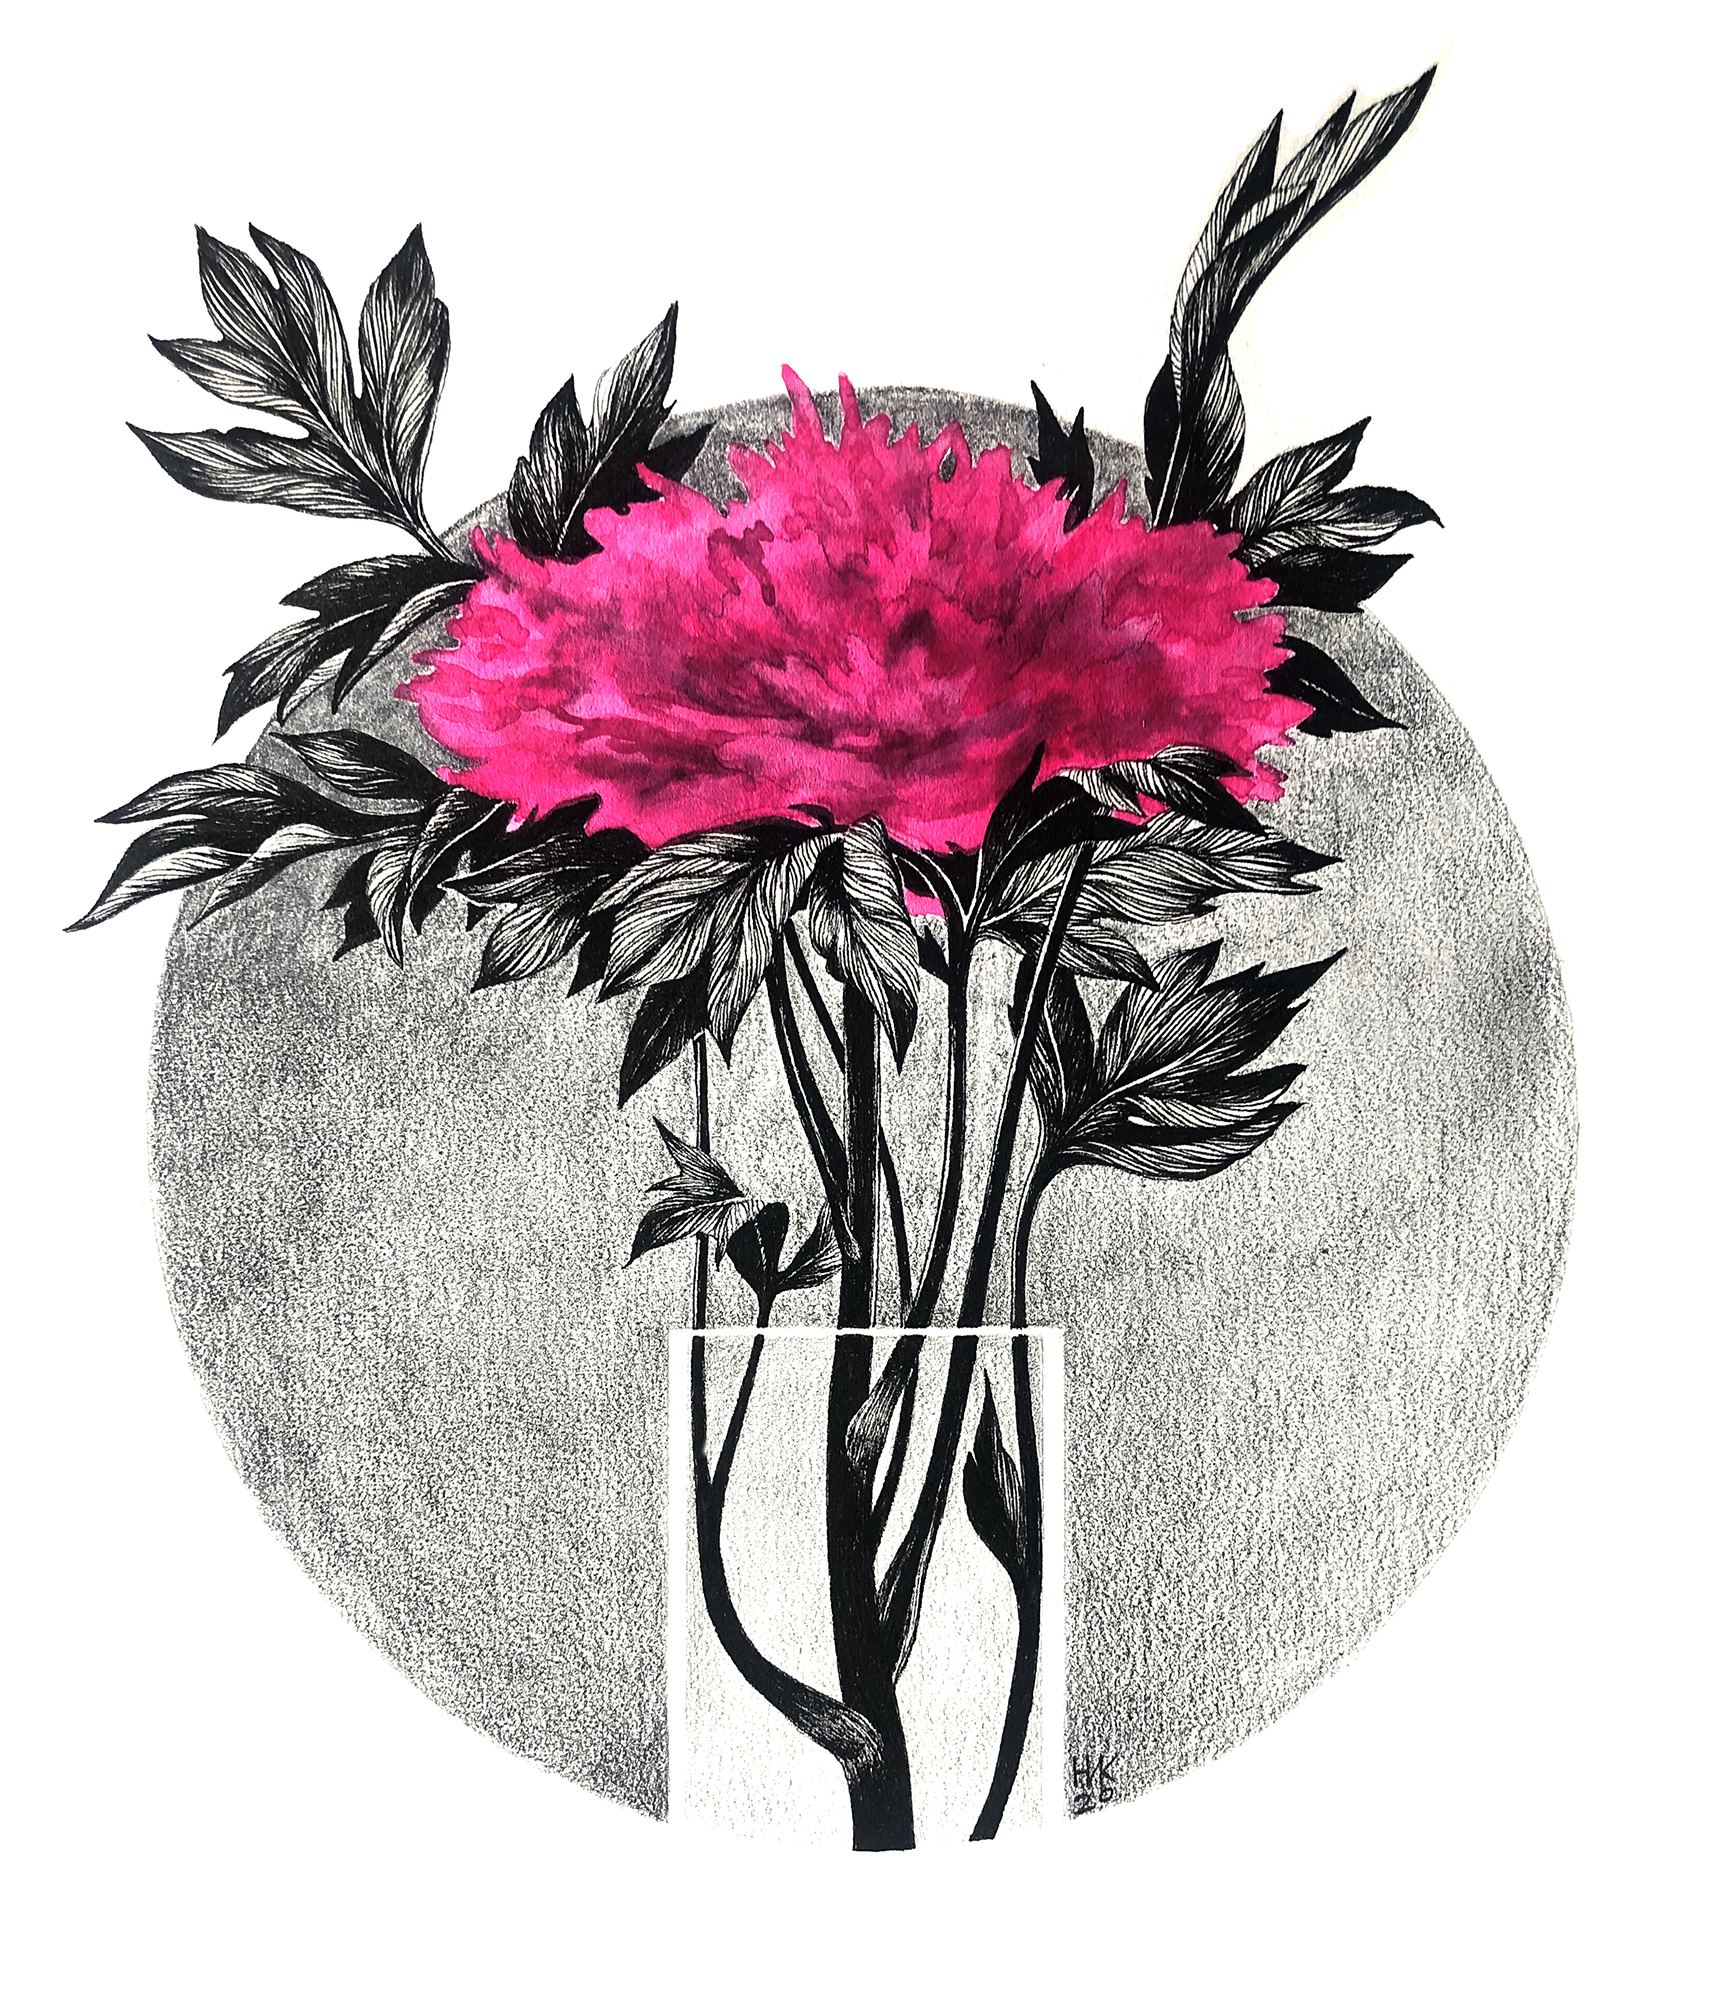 Pink Peony. Composition 2